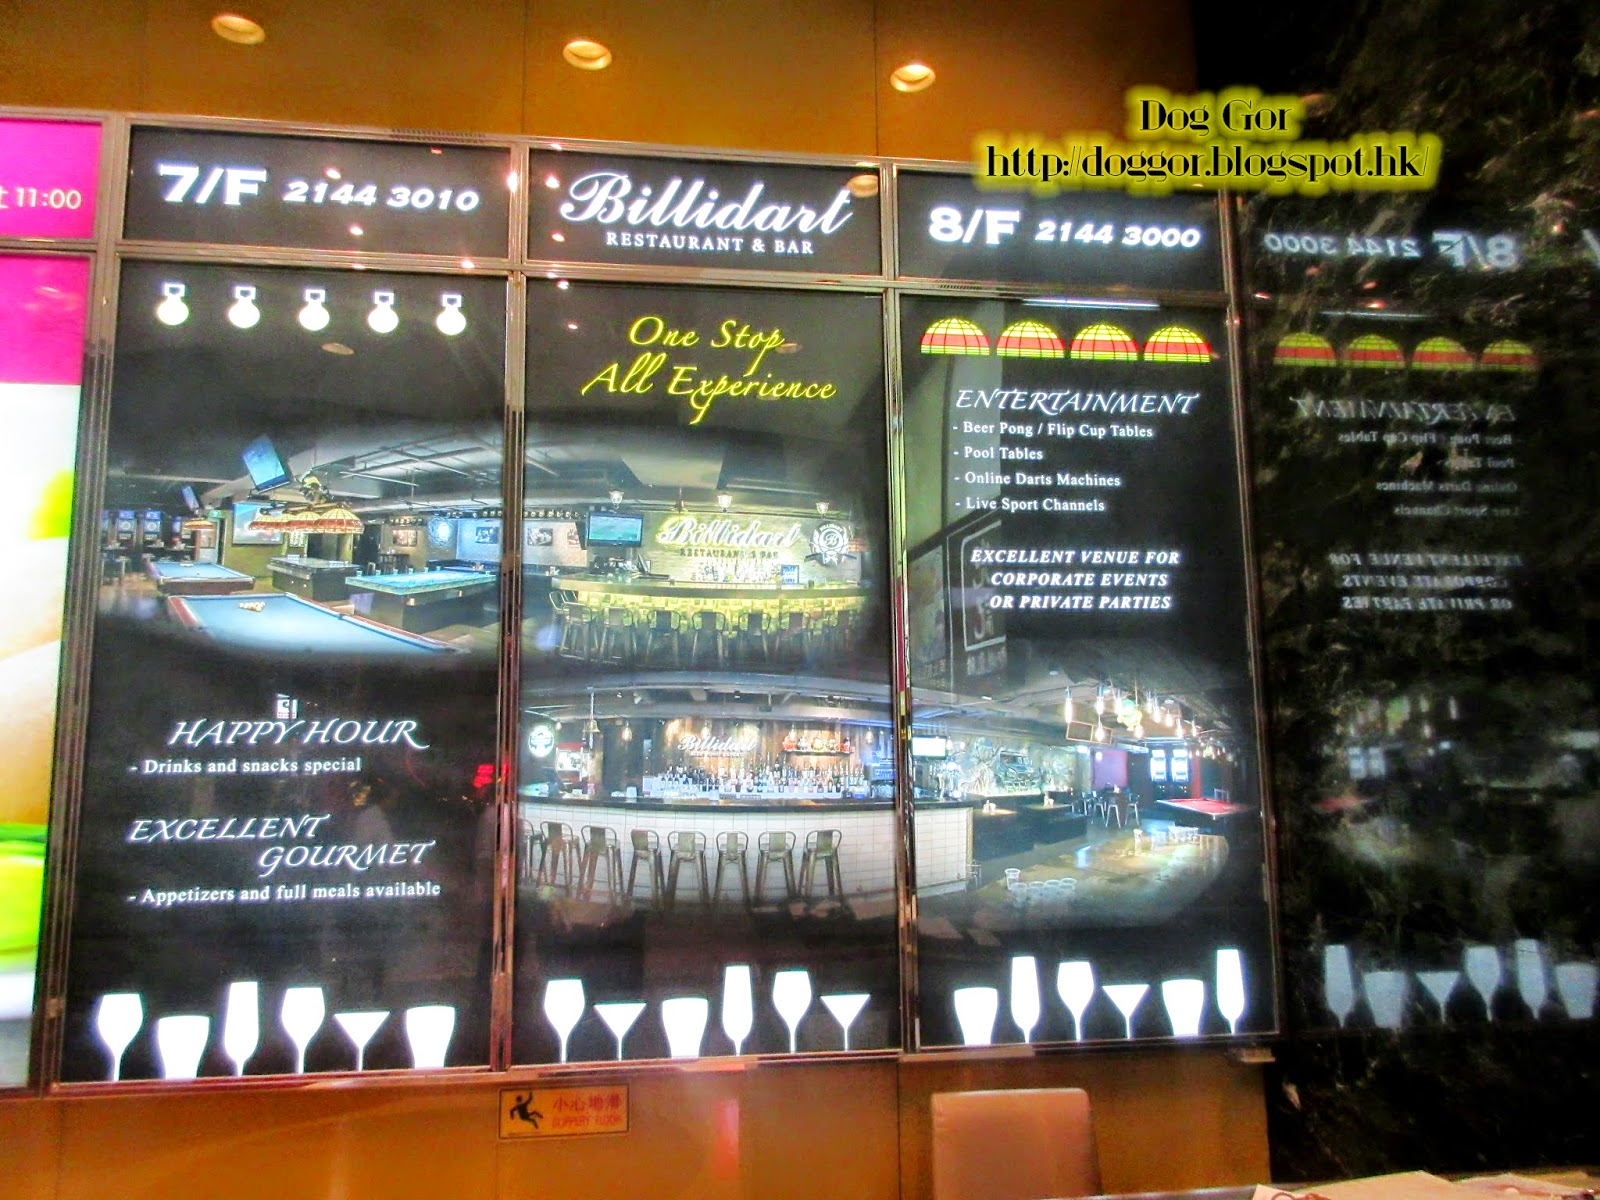 Billidart Restaurant Bar